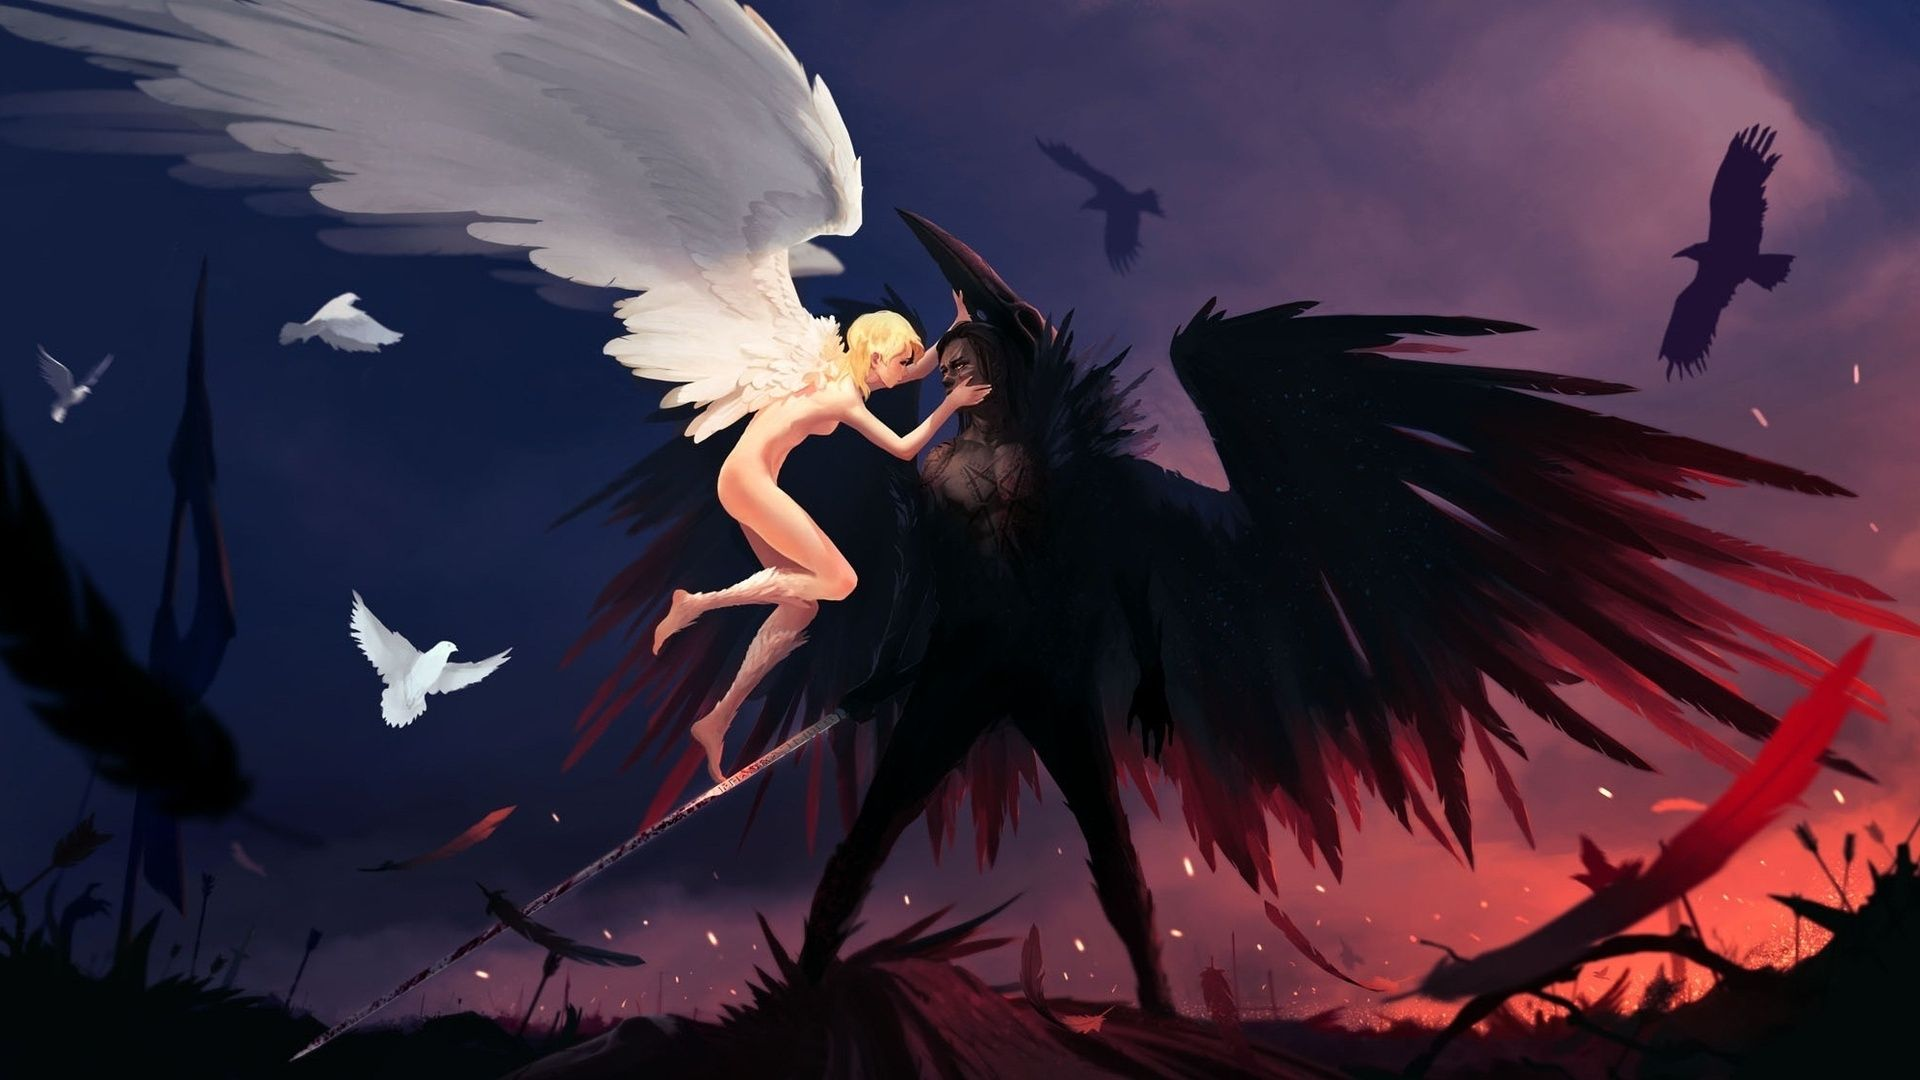 Anime Pictures Angel And Demon